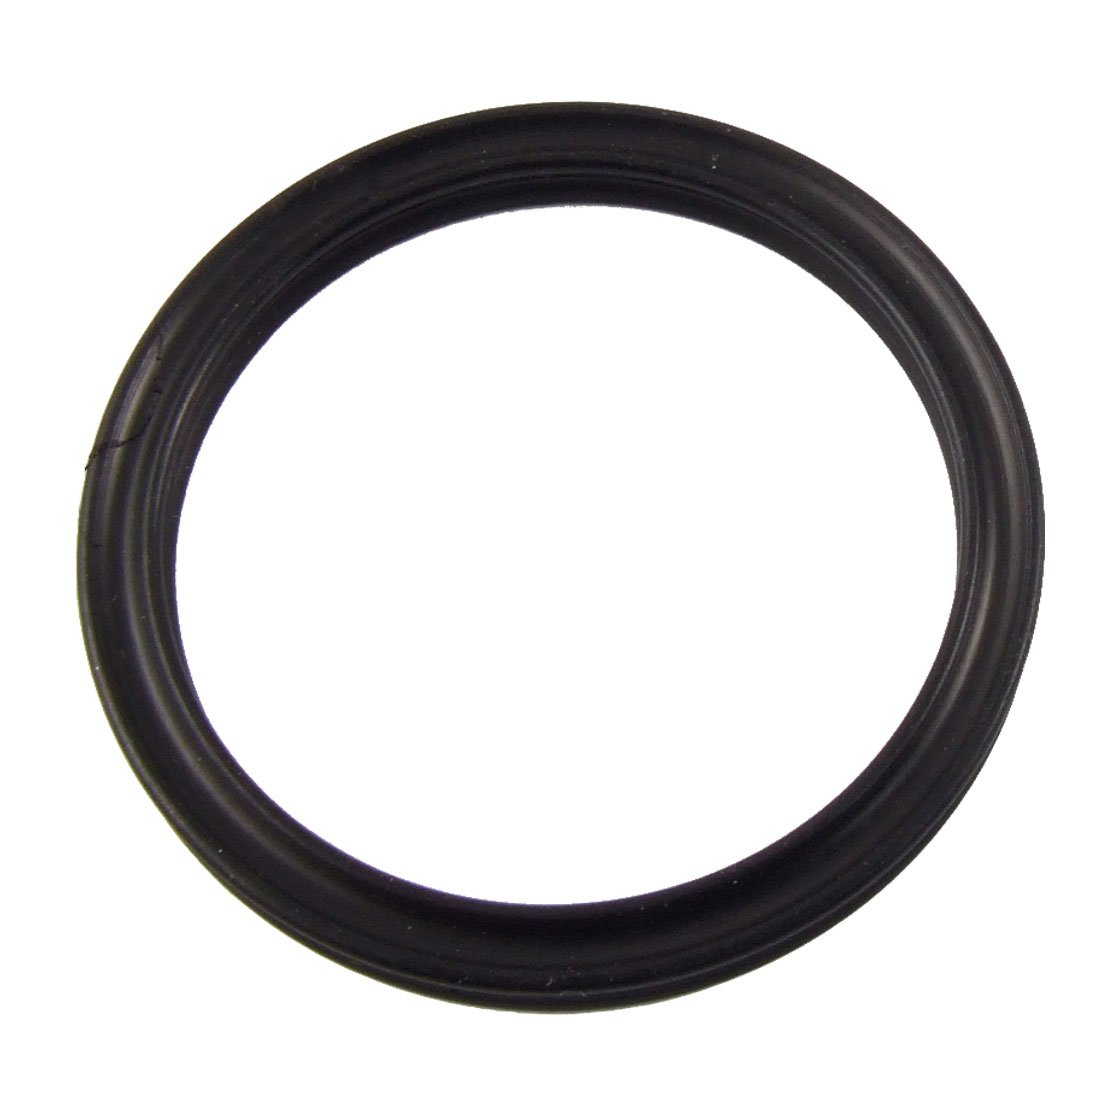 uxcell 40mm x 33mm x 3.53mm Pneumatic Air Sealing Seal Ring Rubber Gasket